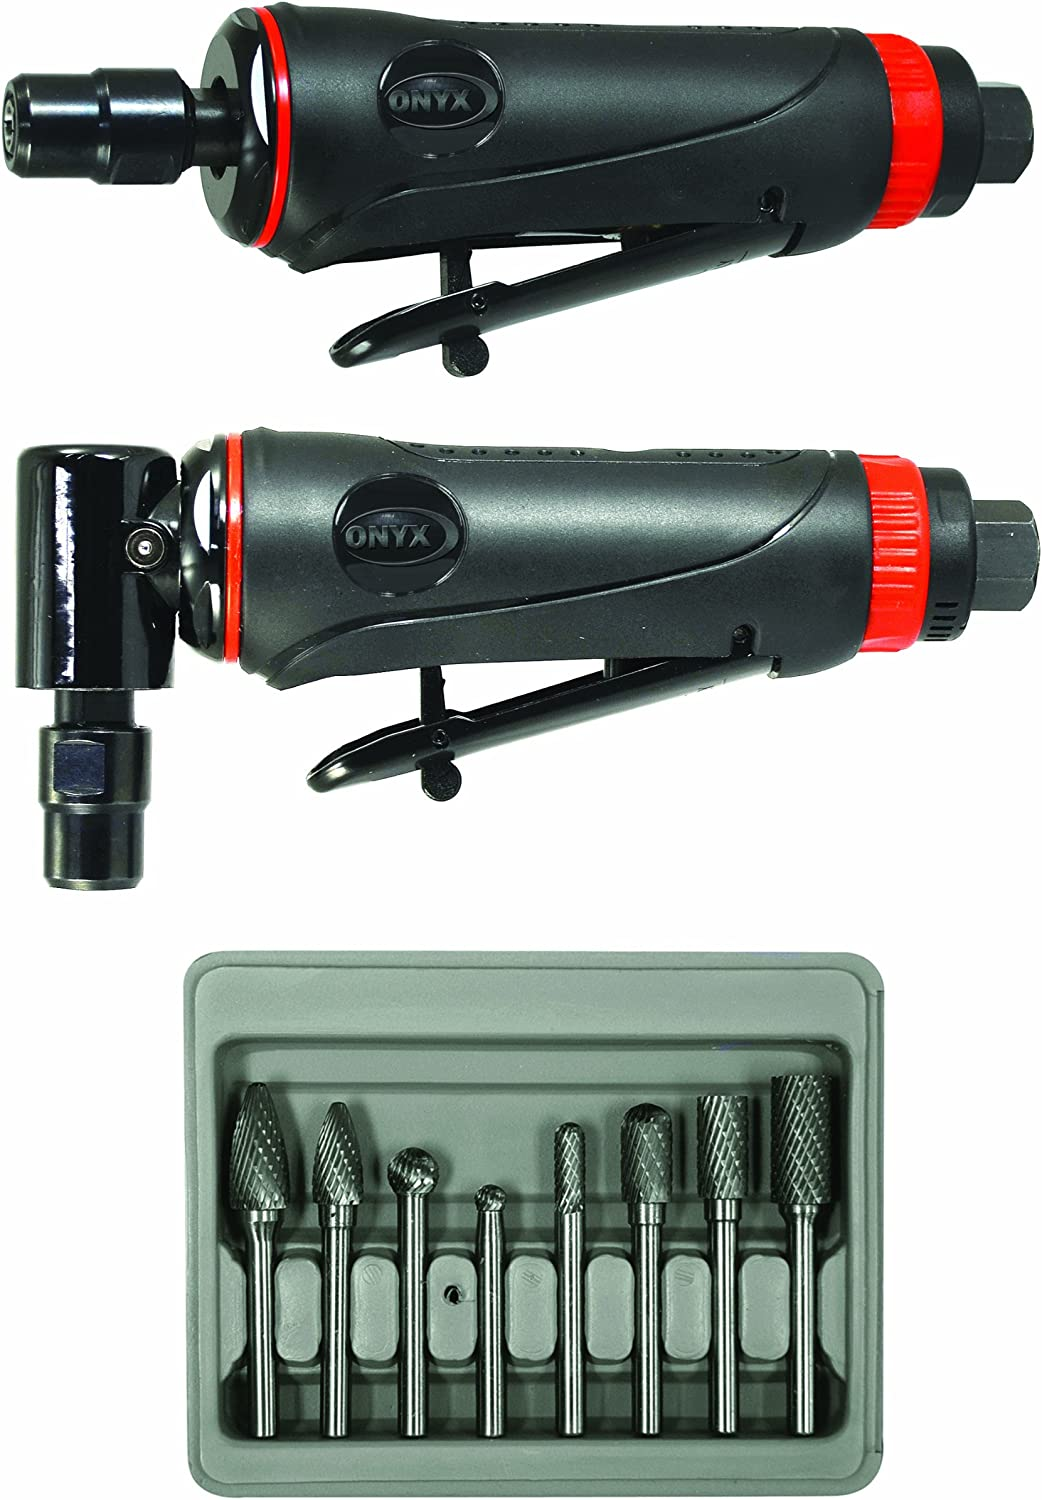 Astro Pneumatic Tool Max 65% OFF 219 ONYX 3pc 90° Grinder w Die Kit Houston Mall